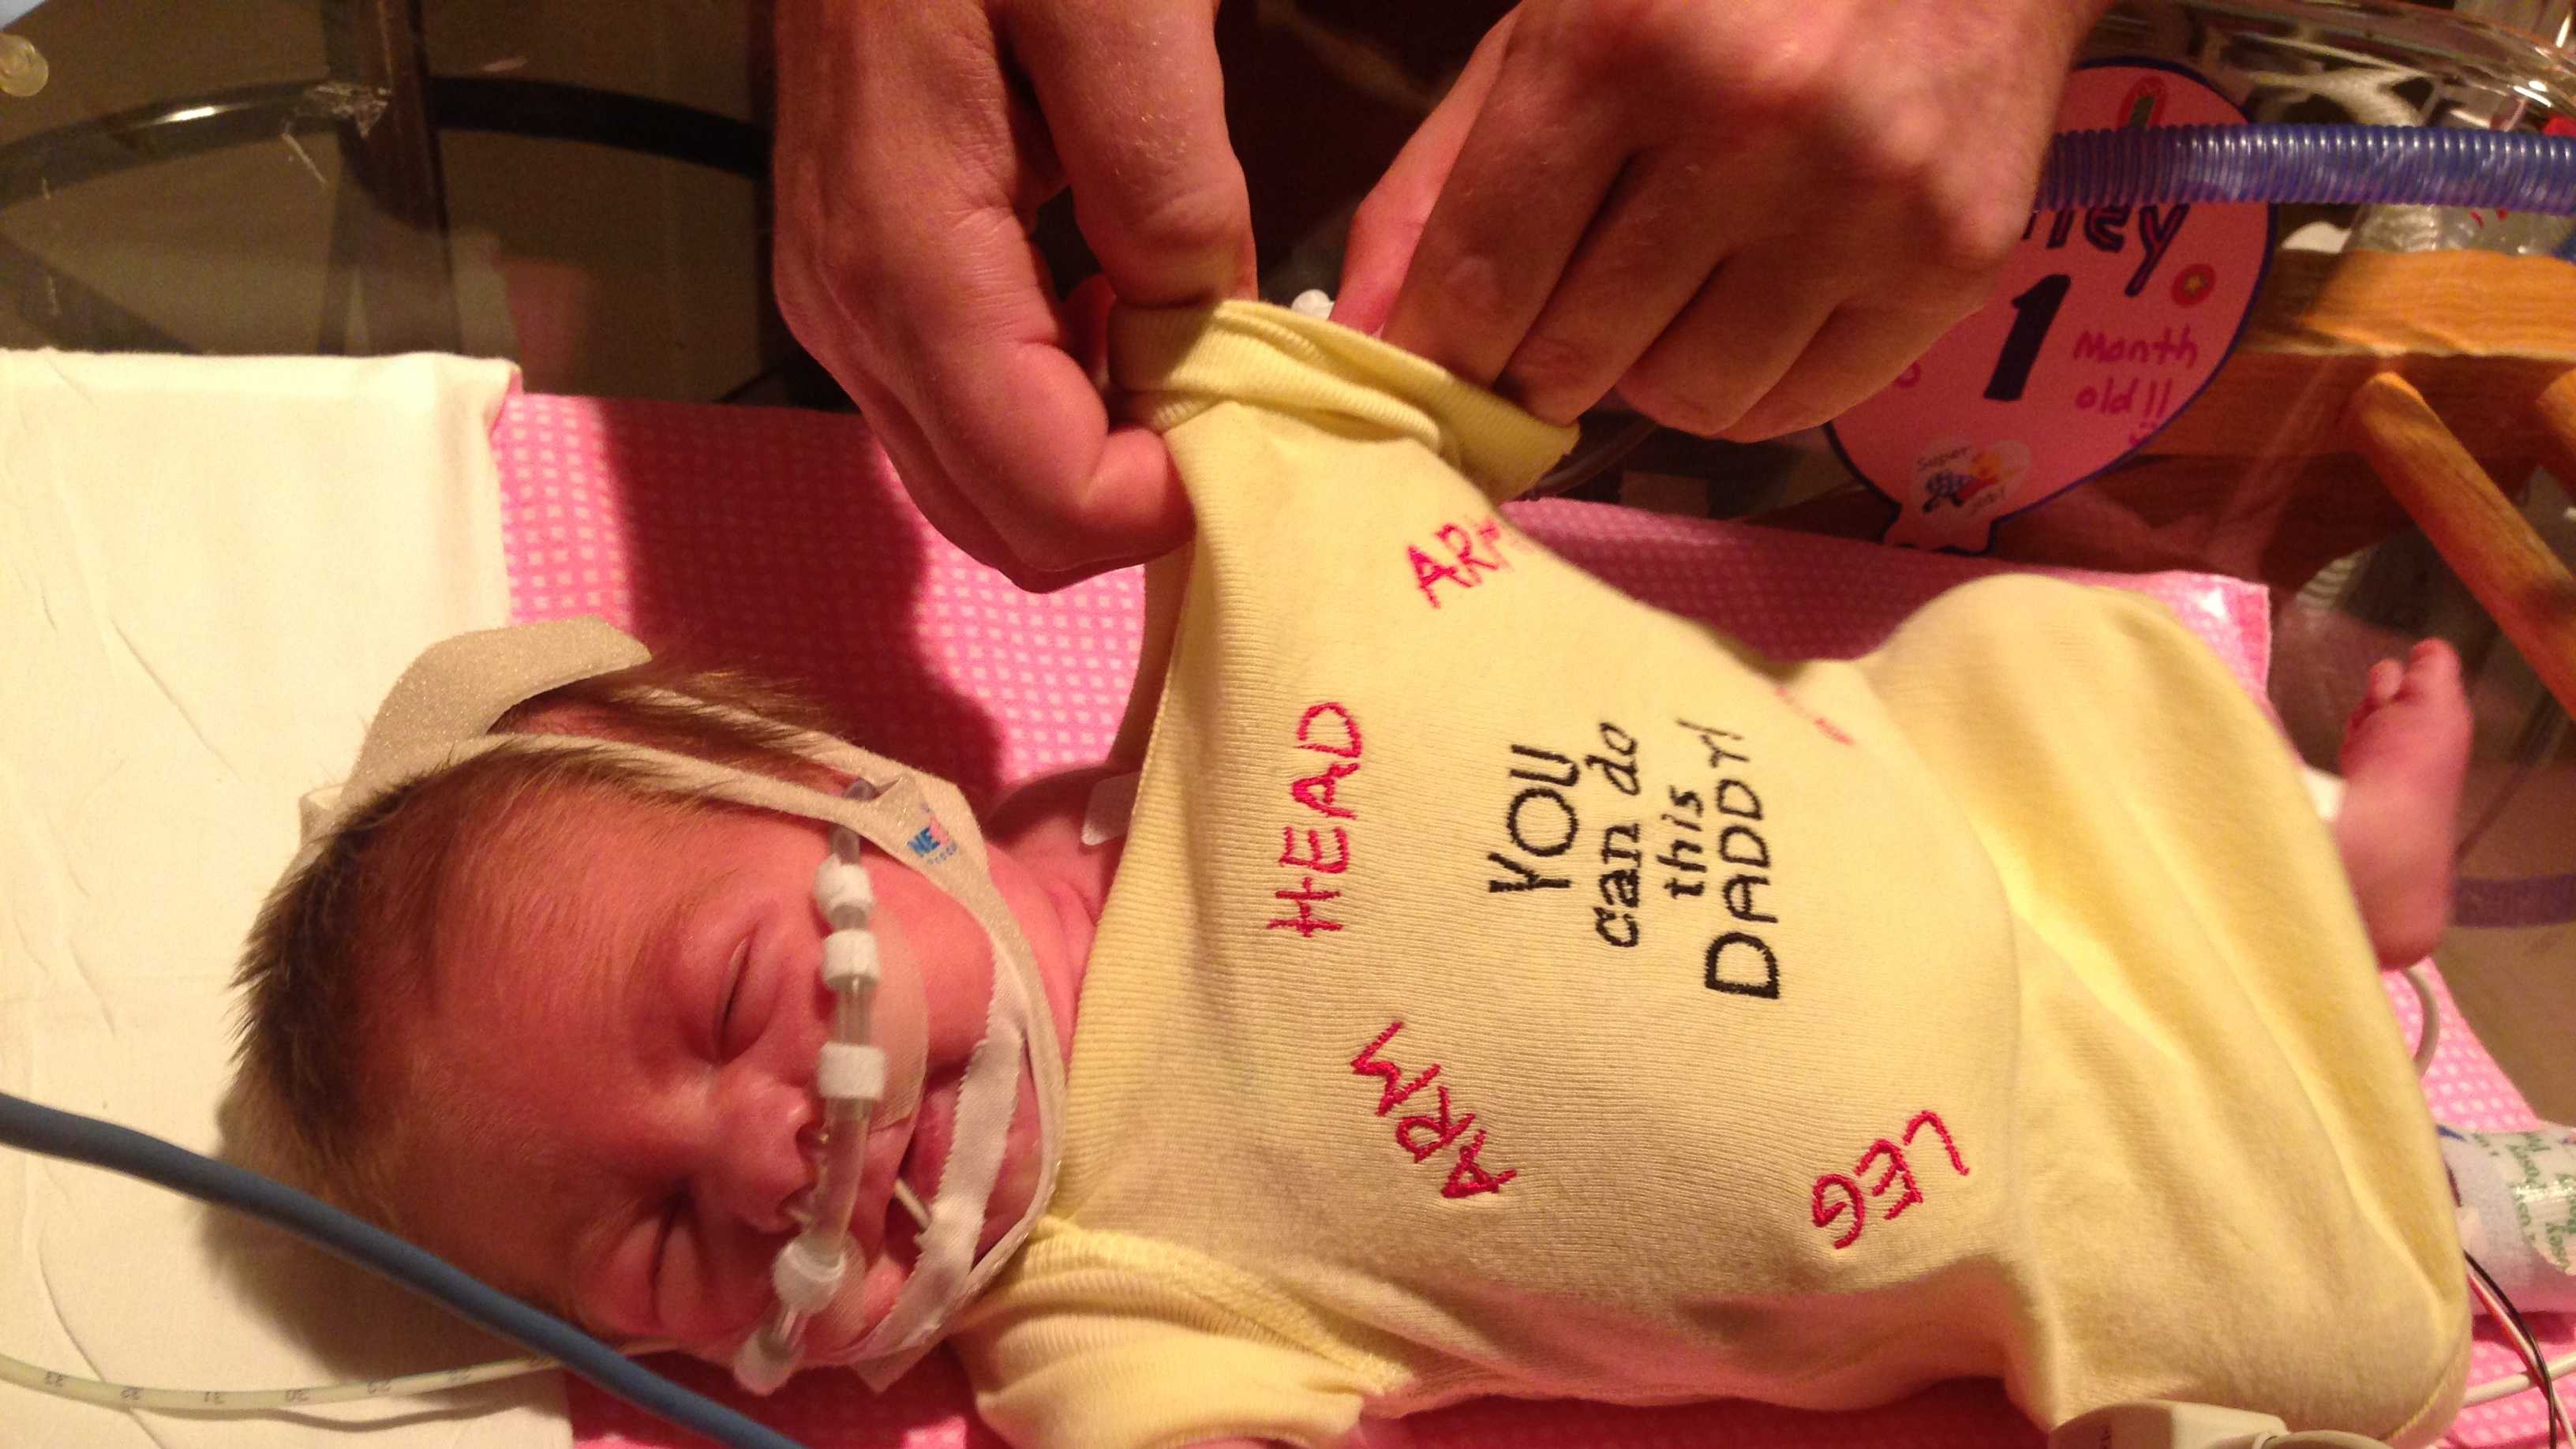 Riley Mae Lang was 2.95 lbs when she was born. She was 2.5 months premature.